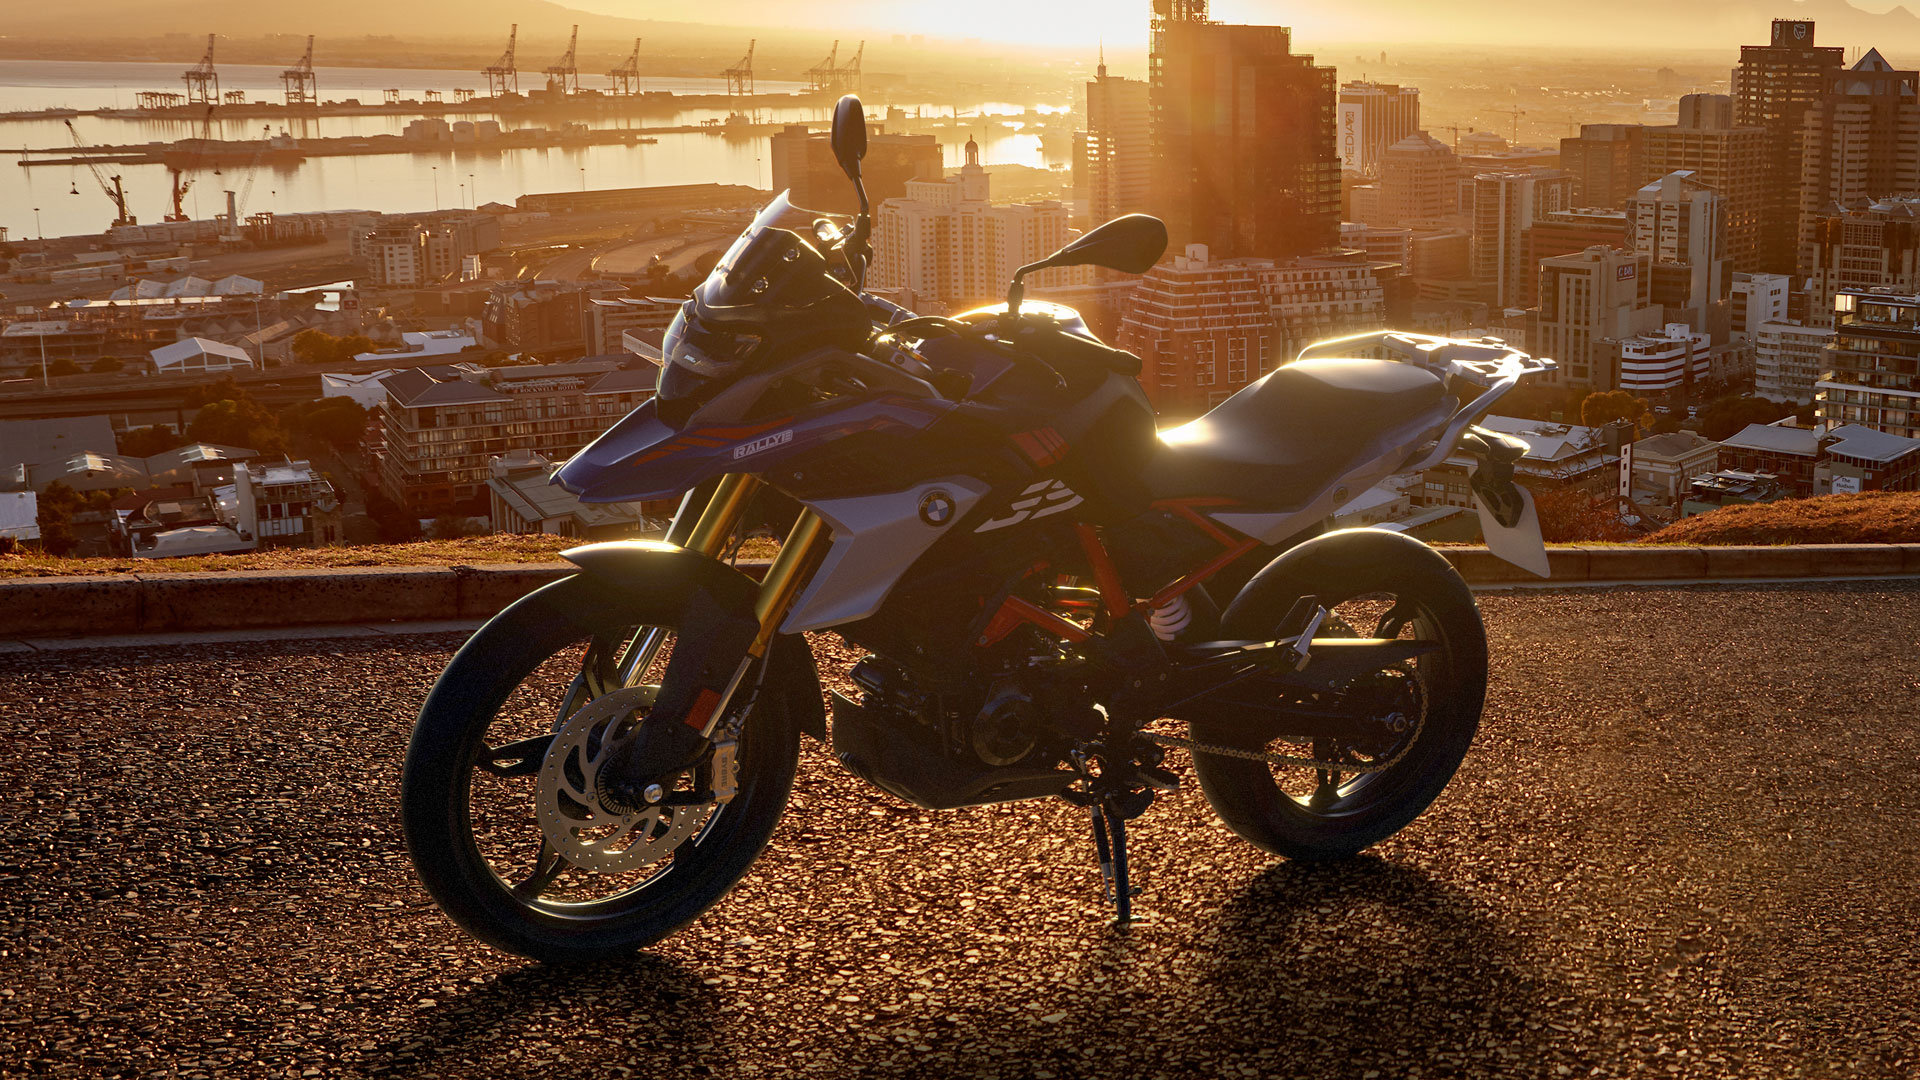 G 310 GS 40 Years of GS Edition - Automobile Bavaria BMW ...